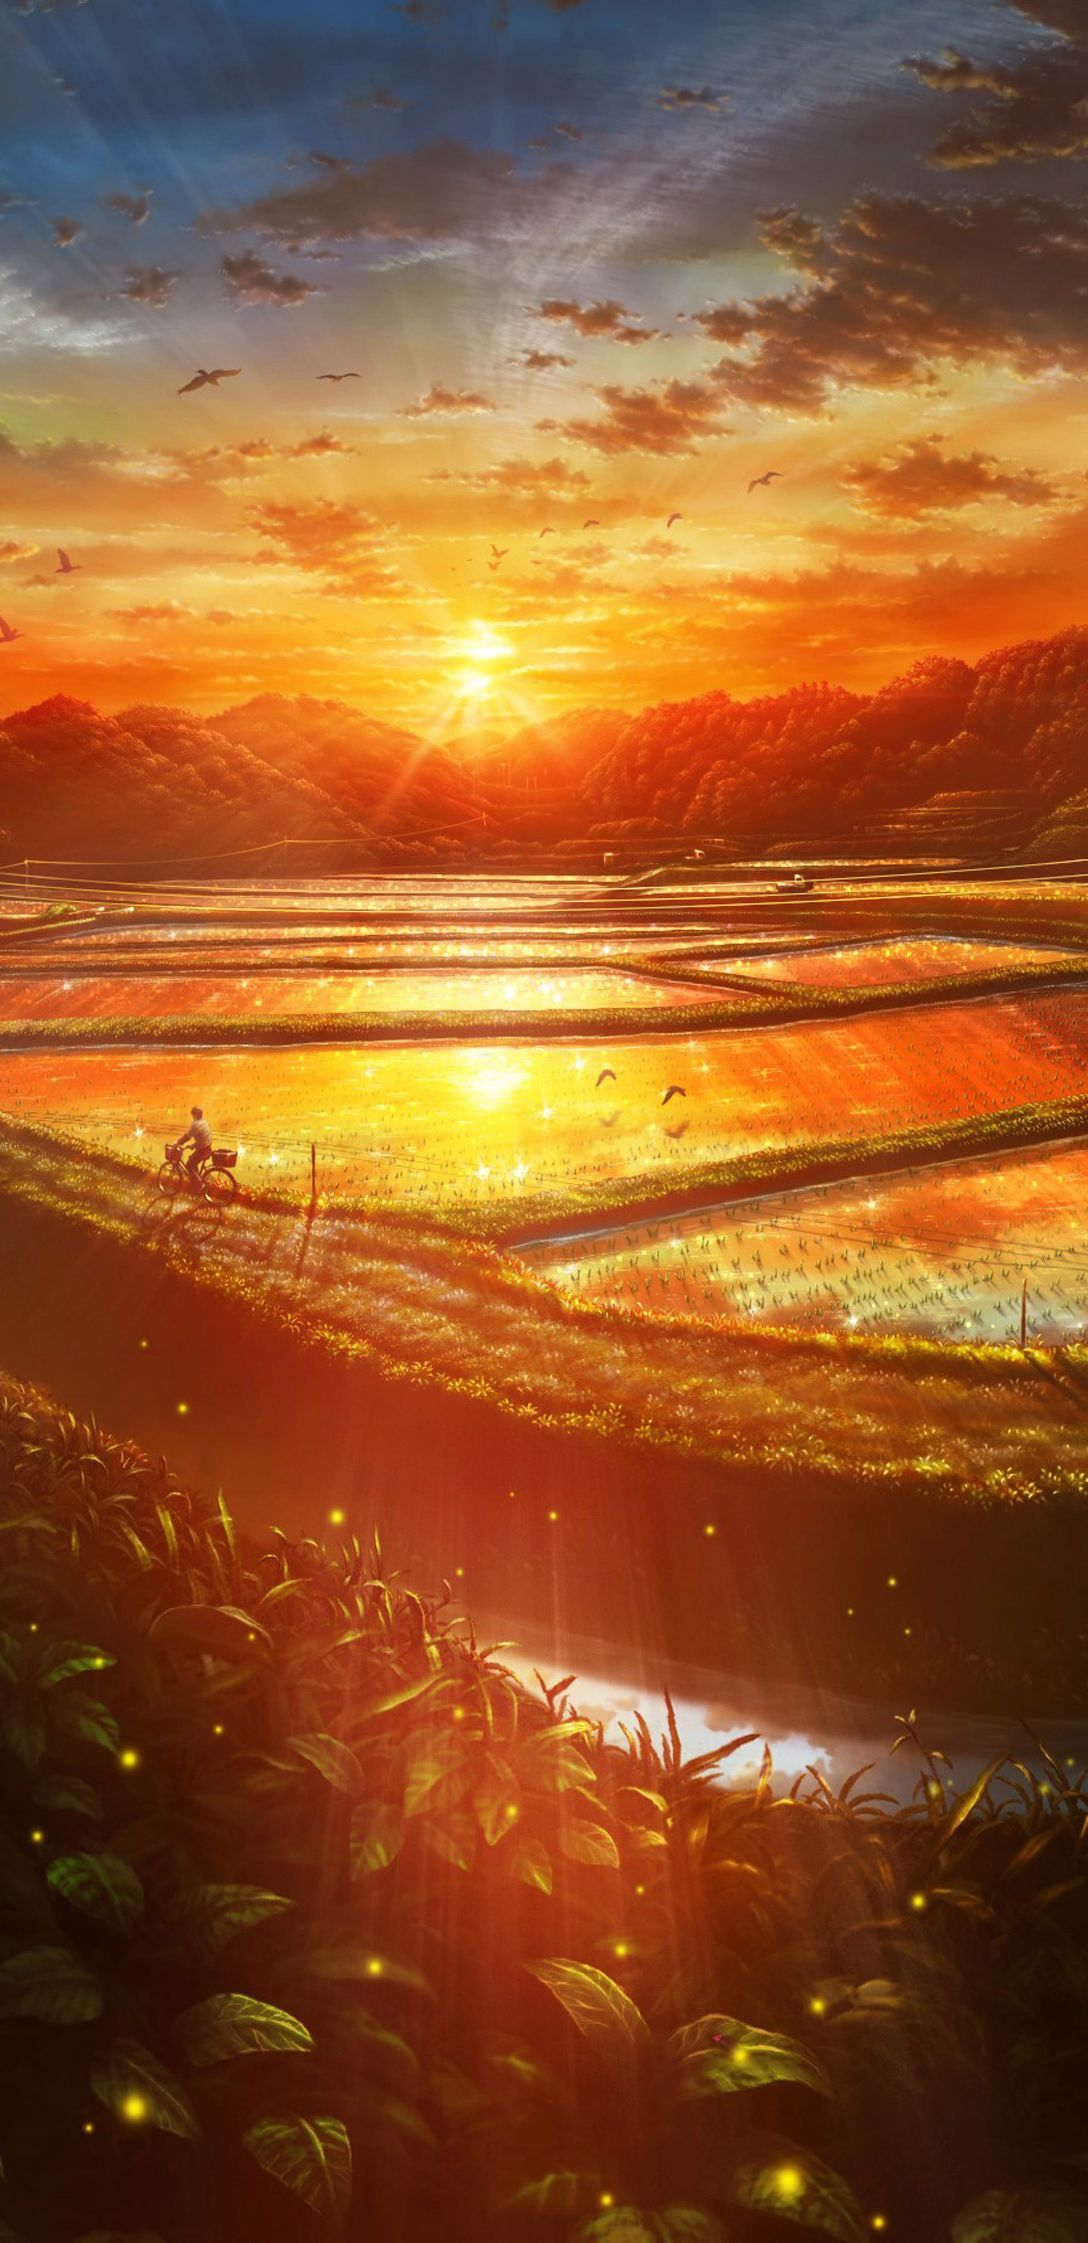 Japanese Anime Widescreen HD Wallpapers - Top Free ...